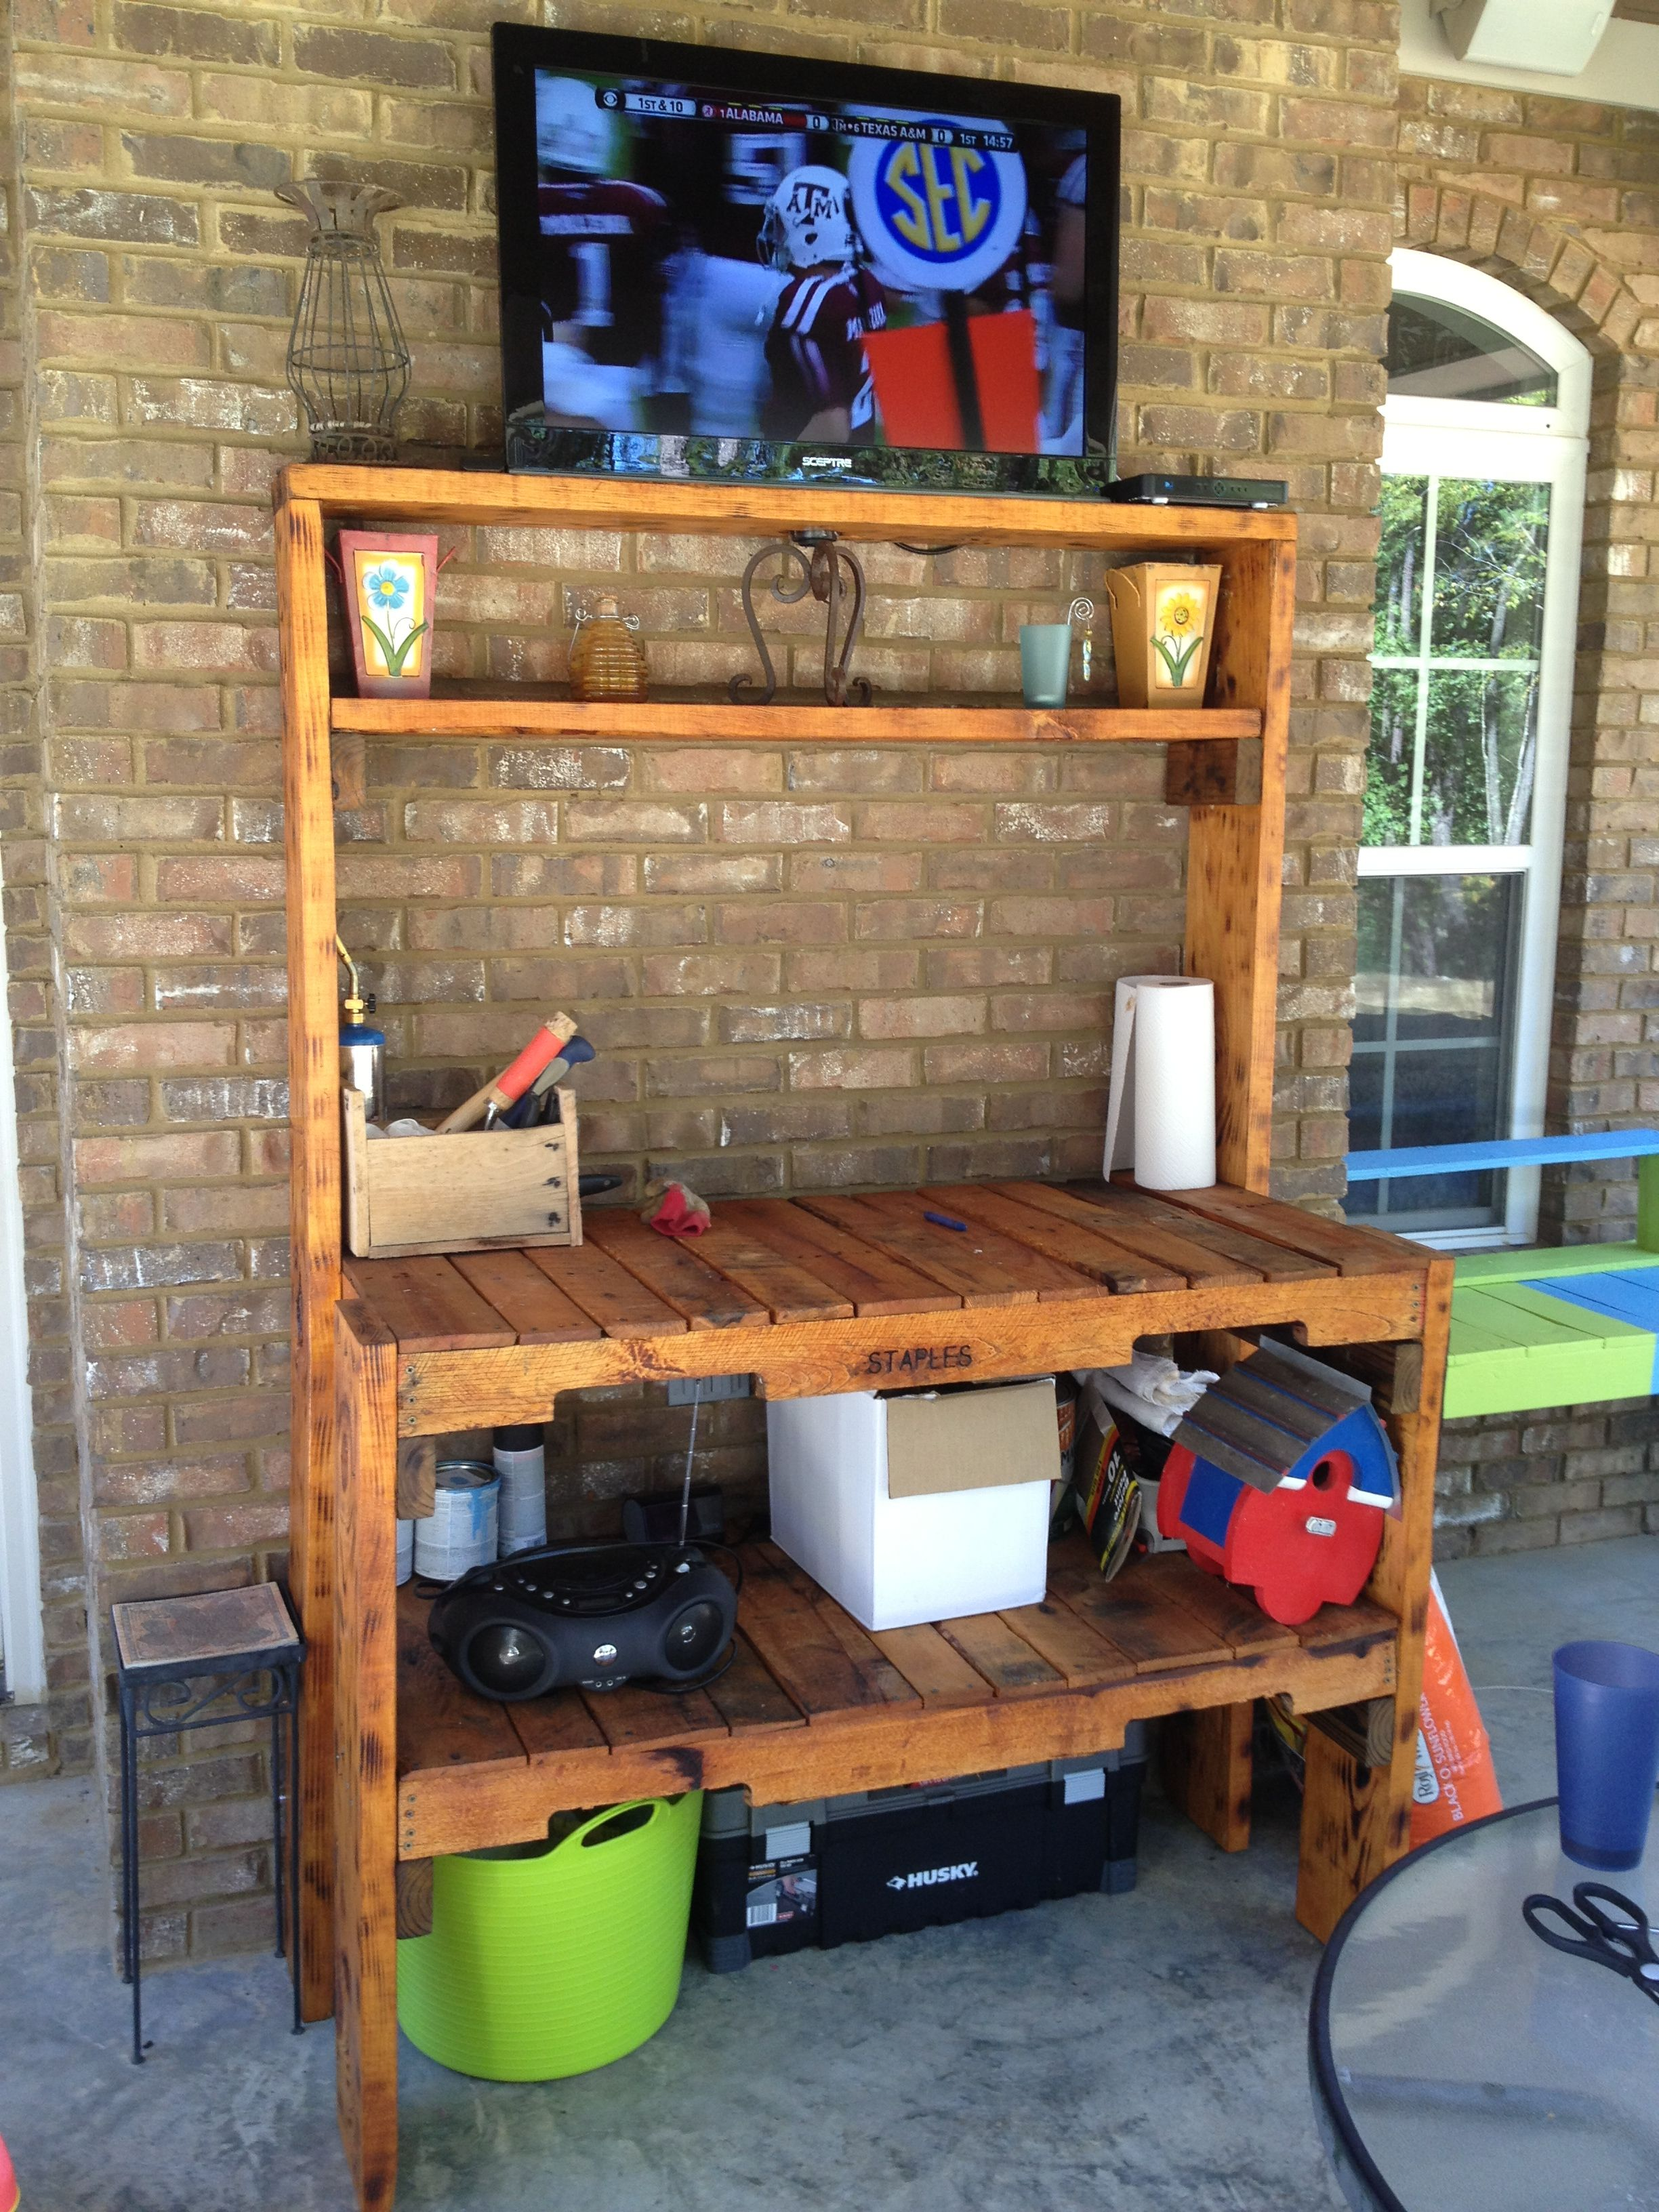 Potting Bench Outdoor Tv Stand Made From Pallets But With The Bakers Rack